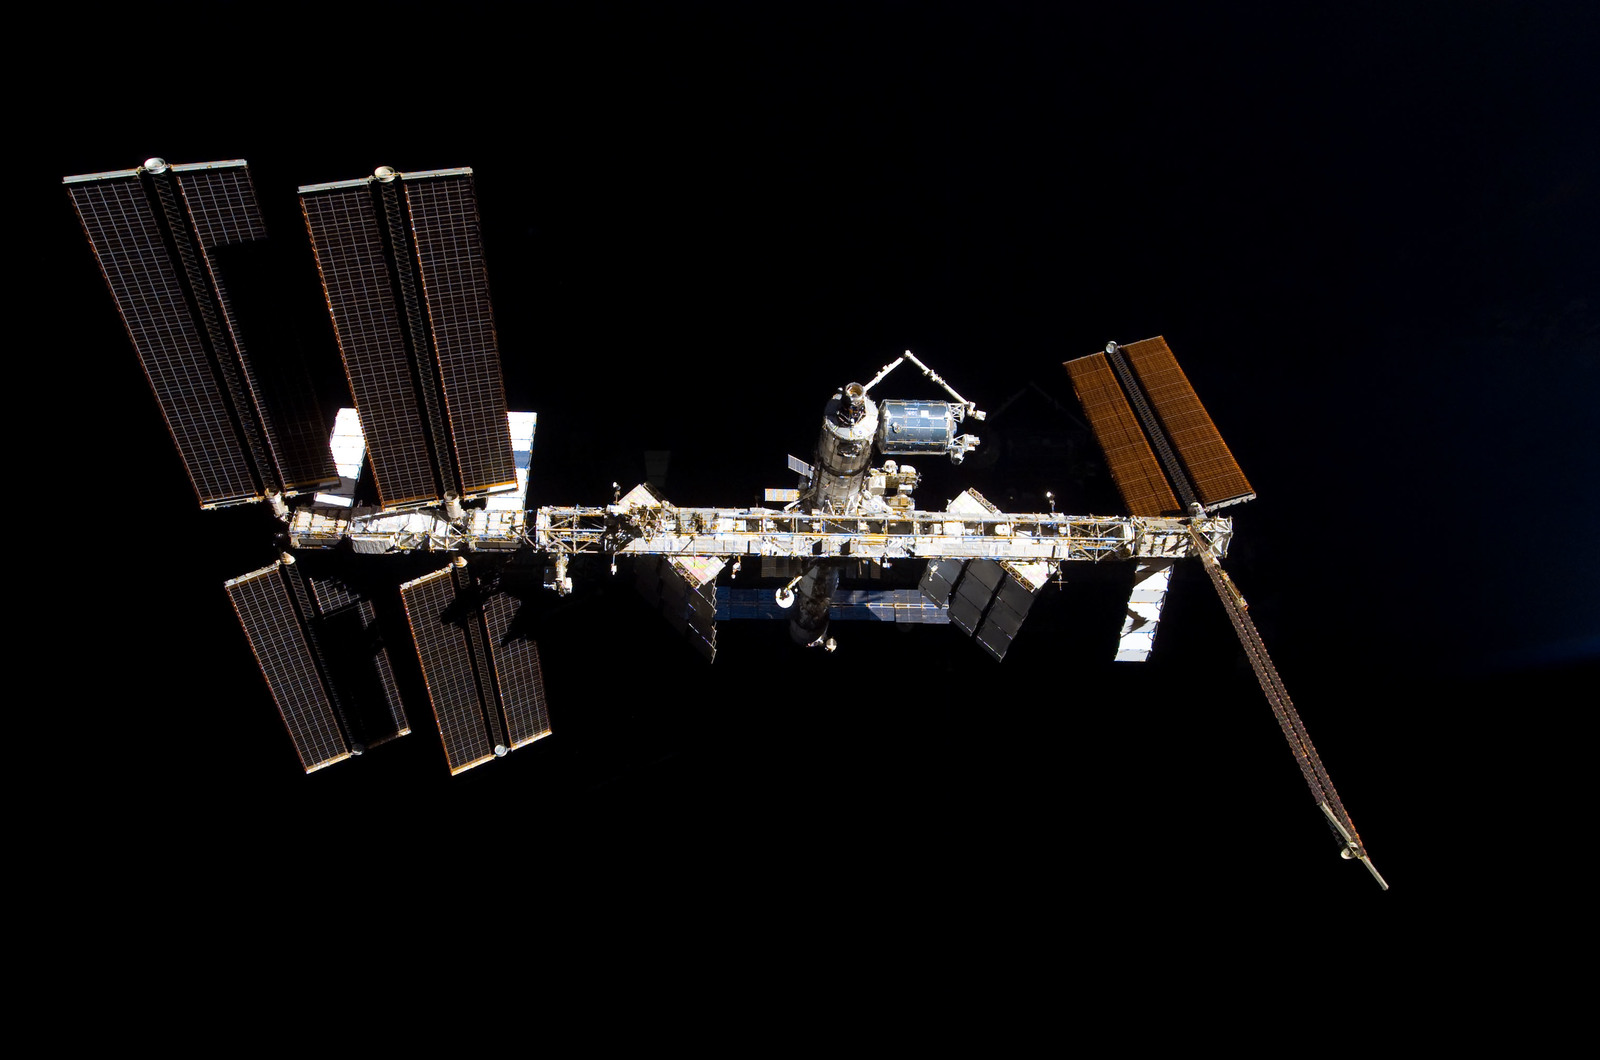 S122E009855 - STS-122 - View of ISS after STS-122 Undocking